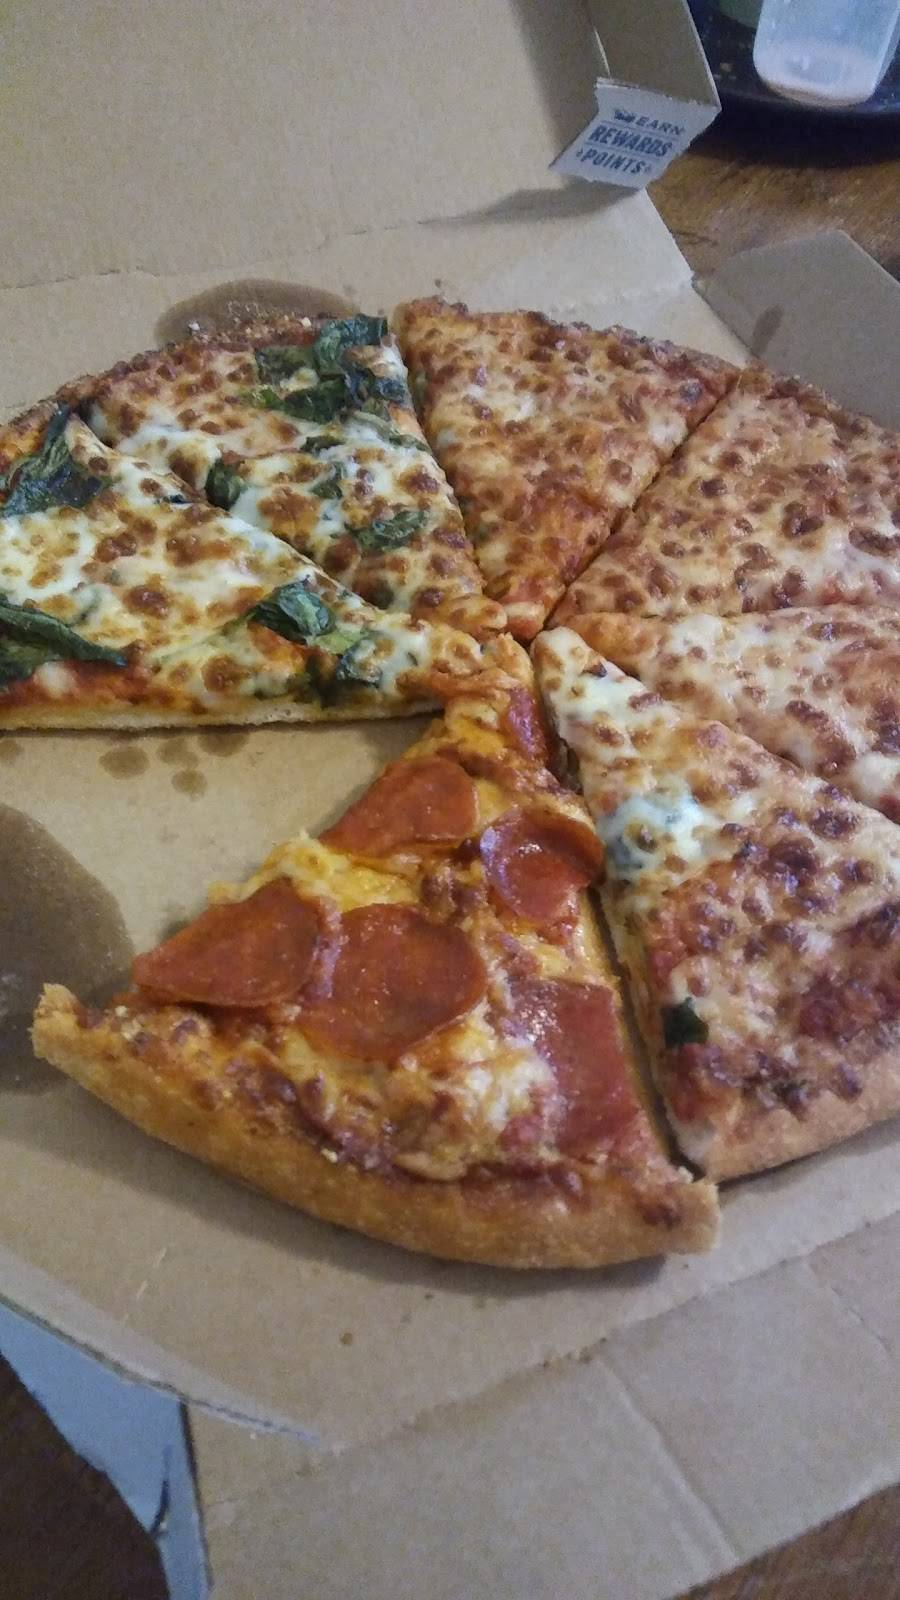 Dominos Pizza | meal delivery | 1544 Broadway, Brooklyn, NY 11221, USA | 3476577577 OR +1 347-657-7577